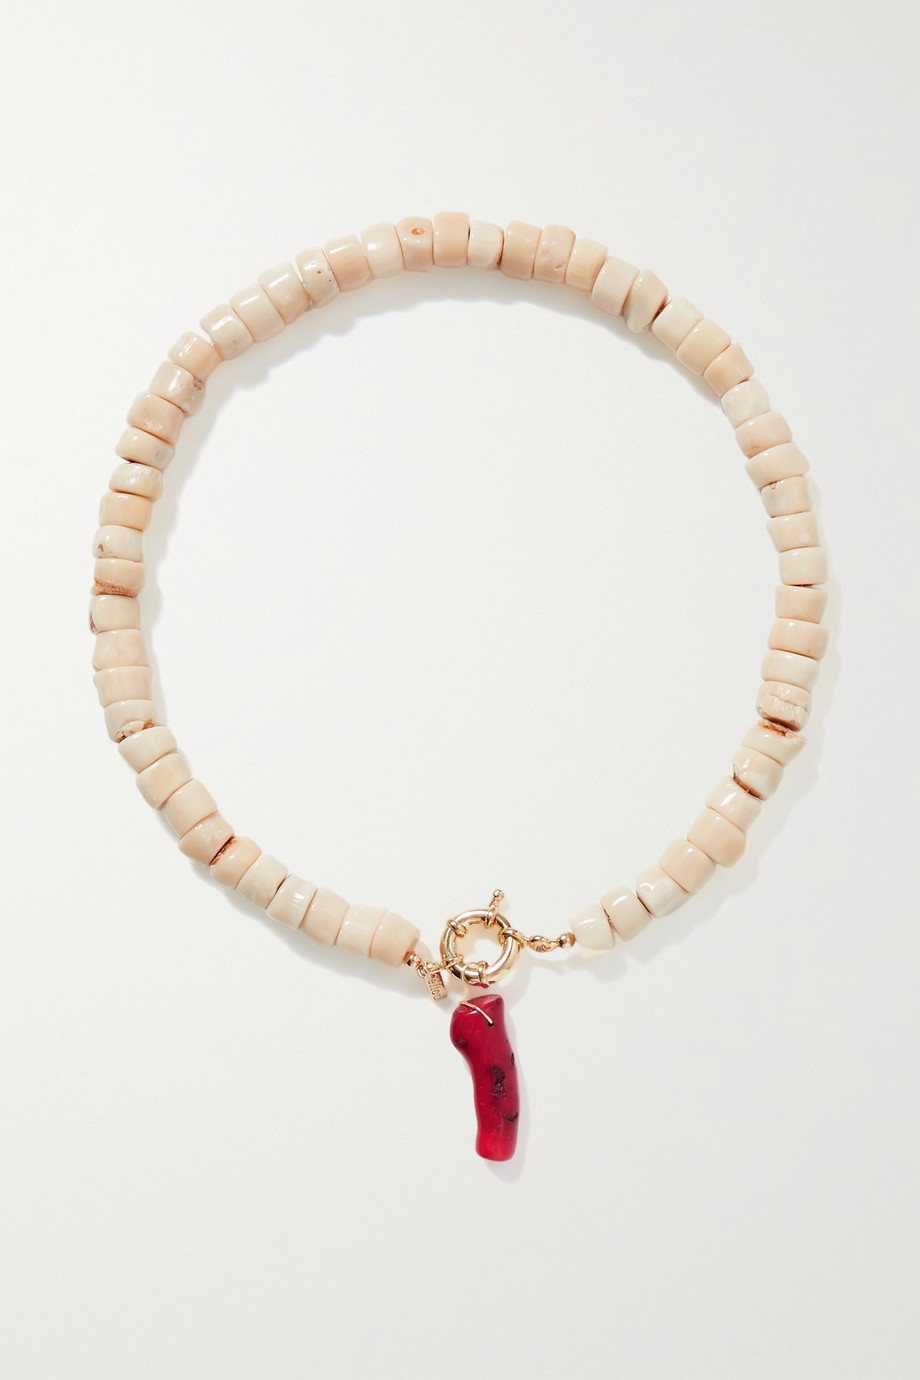 ÉLIOU Salacia gold-plated and coral necklace